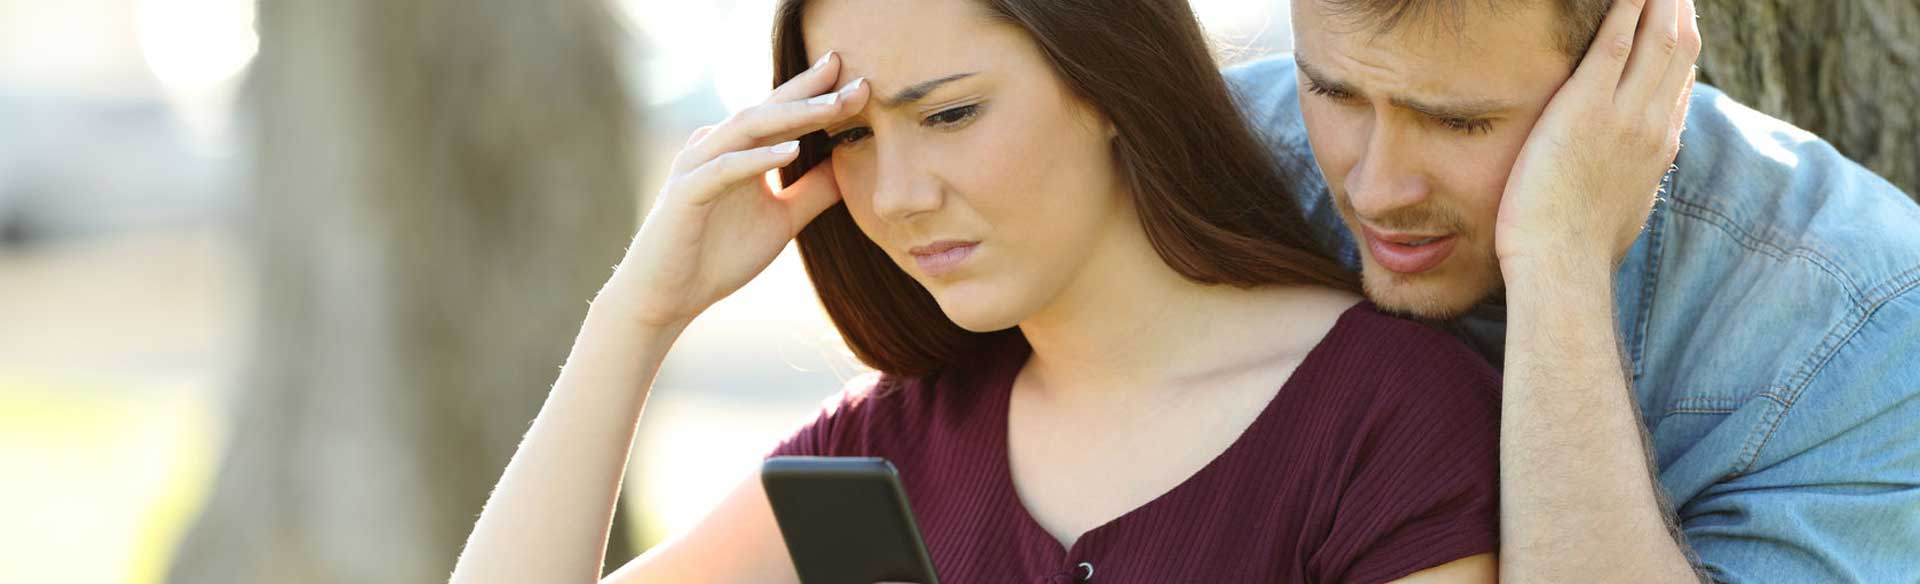 Users are frustrated when they try to use your website when it is not mobile friendly.